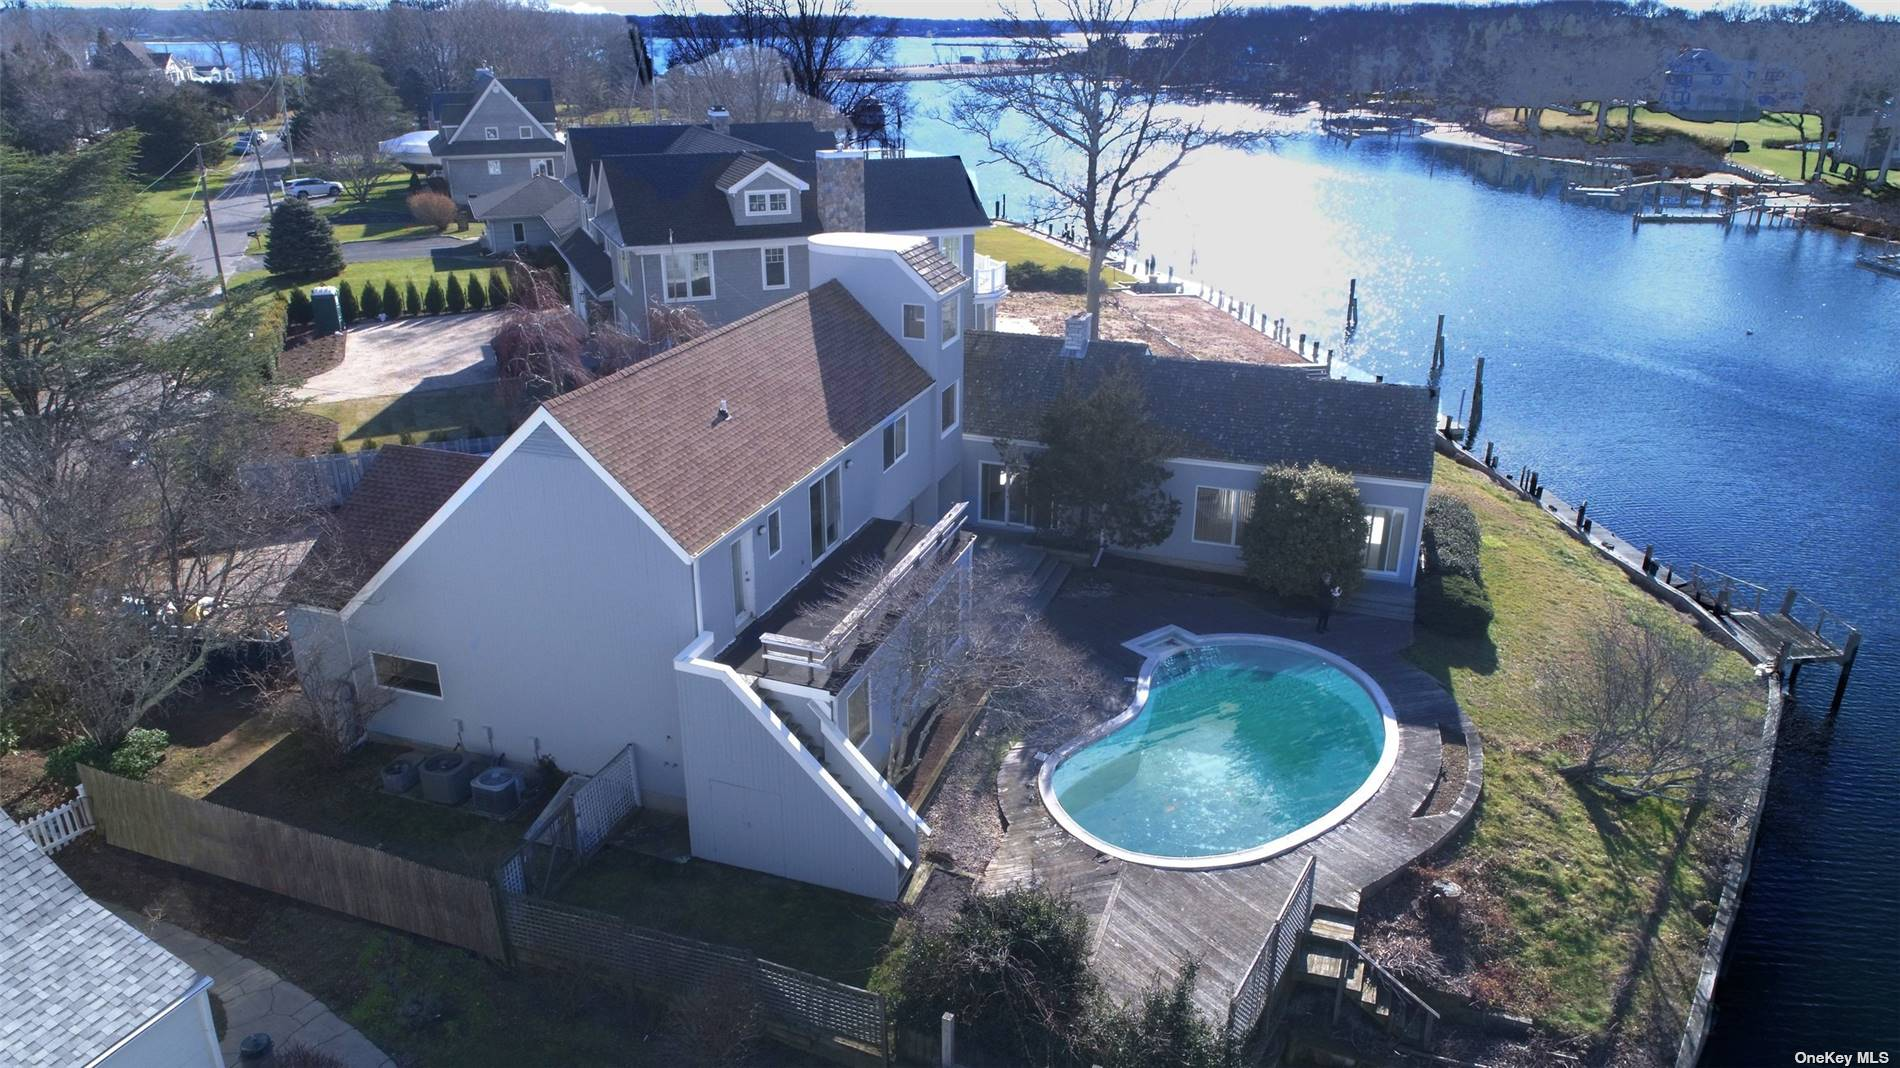 Mid-Century home on Gull Pond with access to Peconic Bay. Property features, bulkhead, dock, and waterside pool on coveted Snug Harbor in Greenport. Spacious and bright with water views from nearly every room. Wood burning fireplace, large, vaulted living room, sunroom, 2nd floor water side balcony, 3rd floor office/observatory, 2-bay garage, full basement with walkout workshop & bilco. 30' dock with 6' draft at low tide can accommodate large boat.